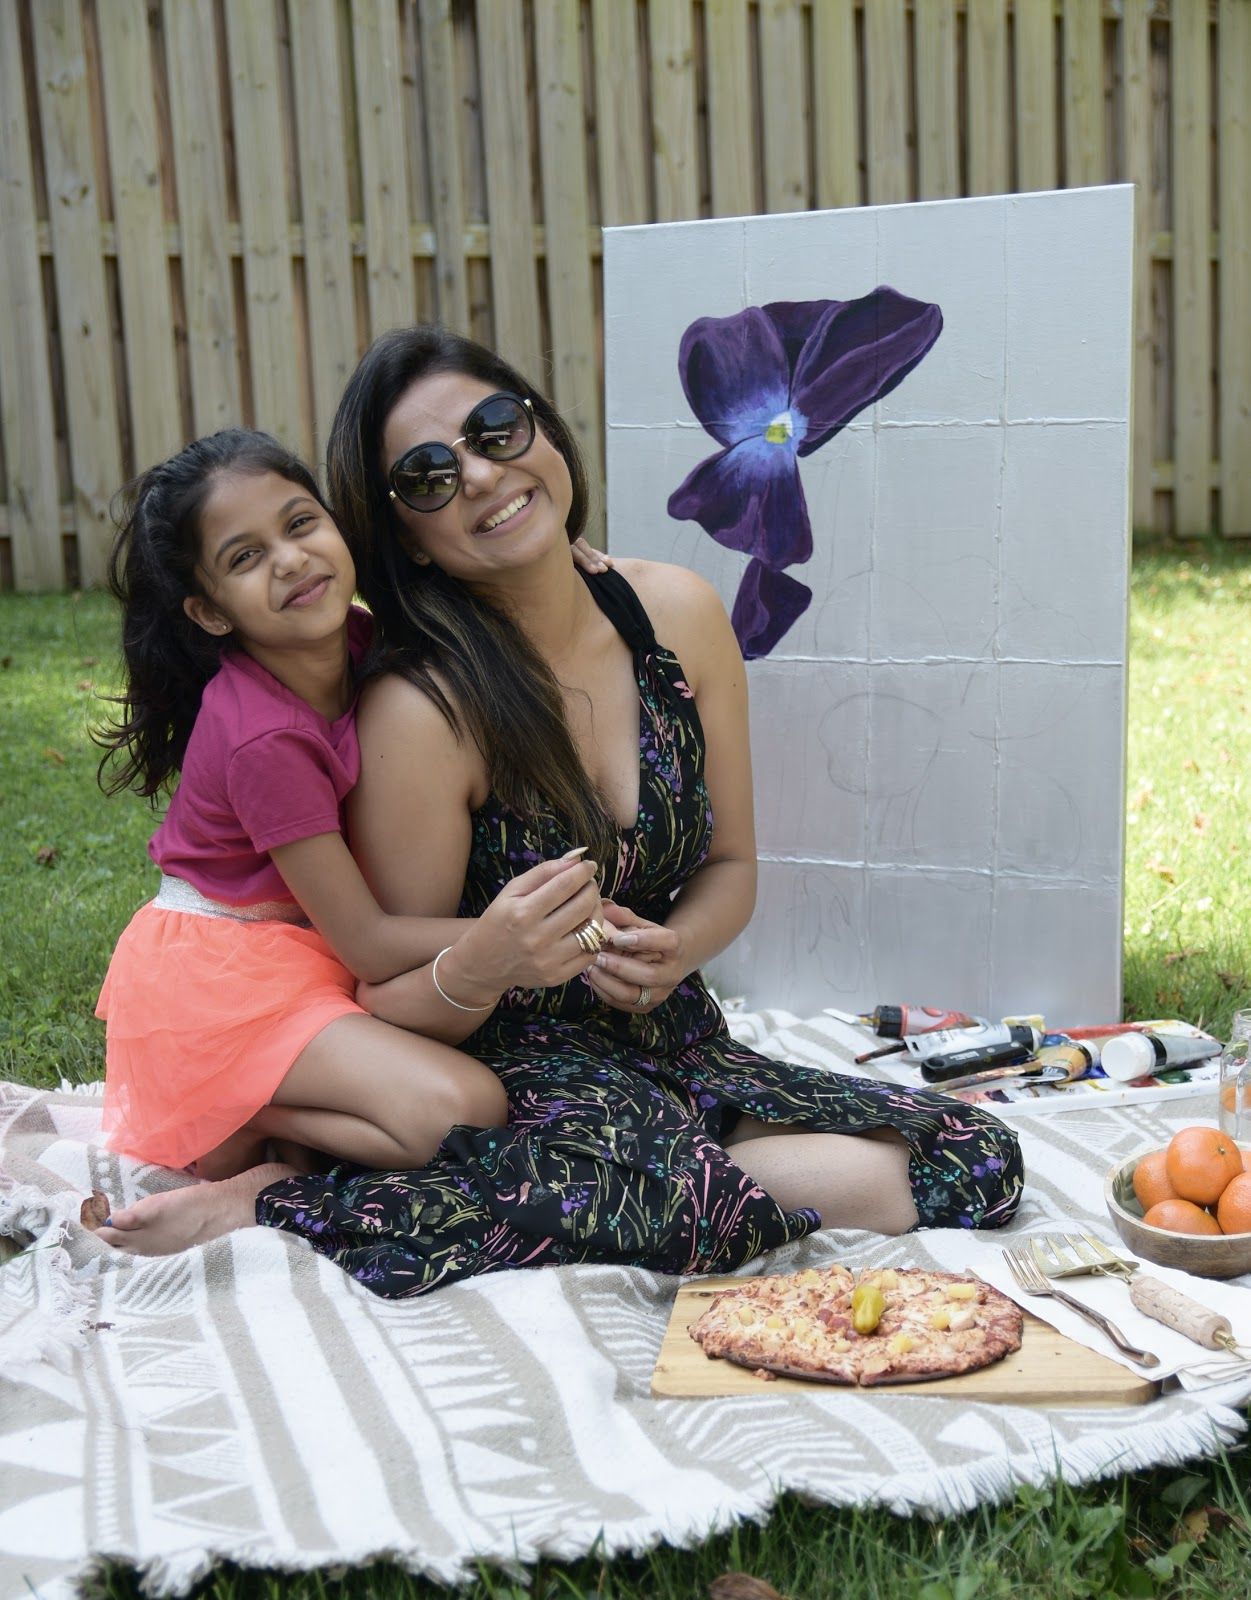 papa johns gluten free crust, paint and pizza party, mom blogger, dc blogger, pizza, gluten free diet, gluten free symtopms, what to eat, myriad musings, saumya shiohare